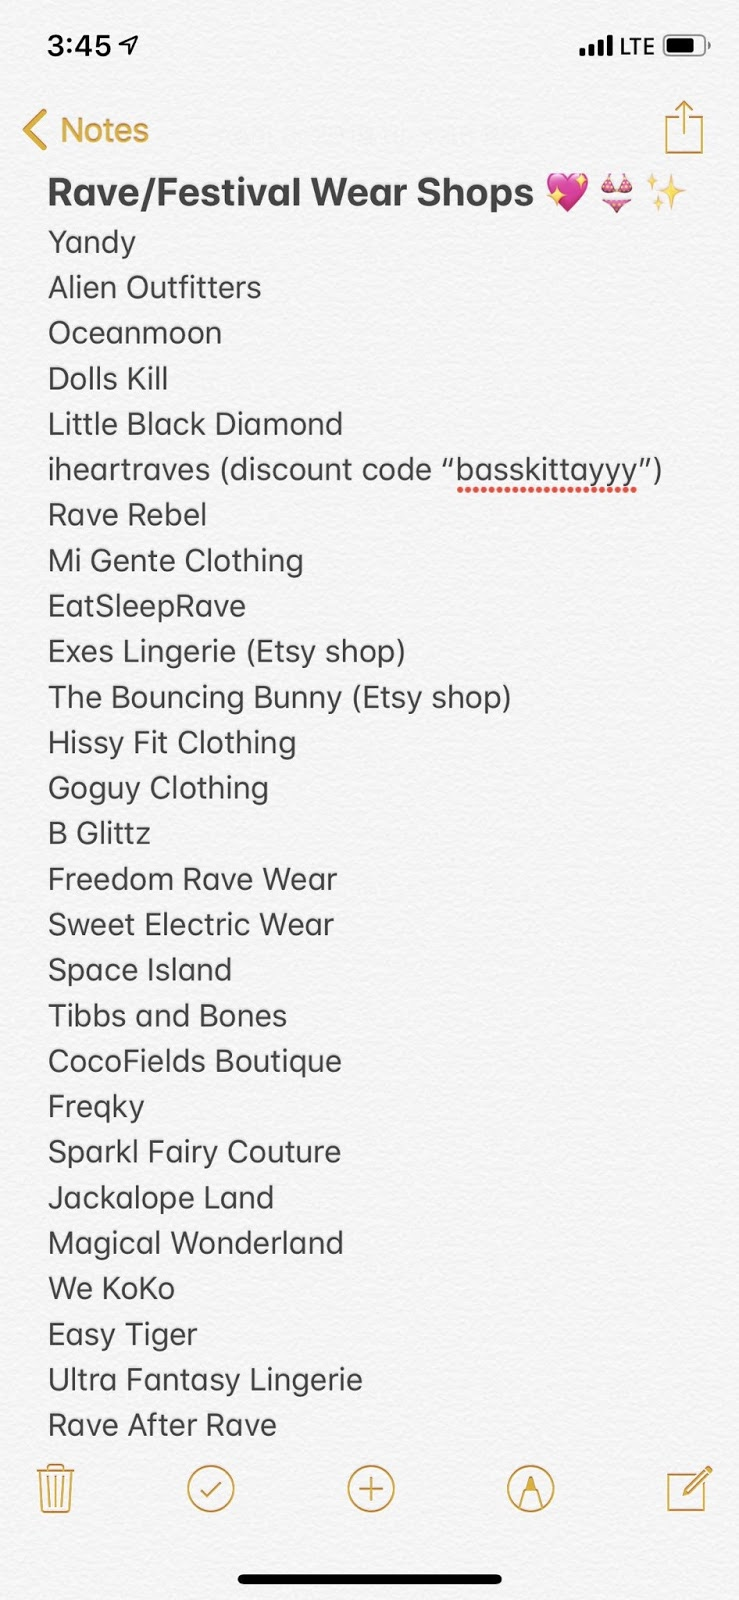 A list of rave and festival wear shops